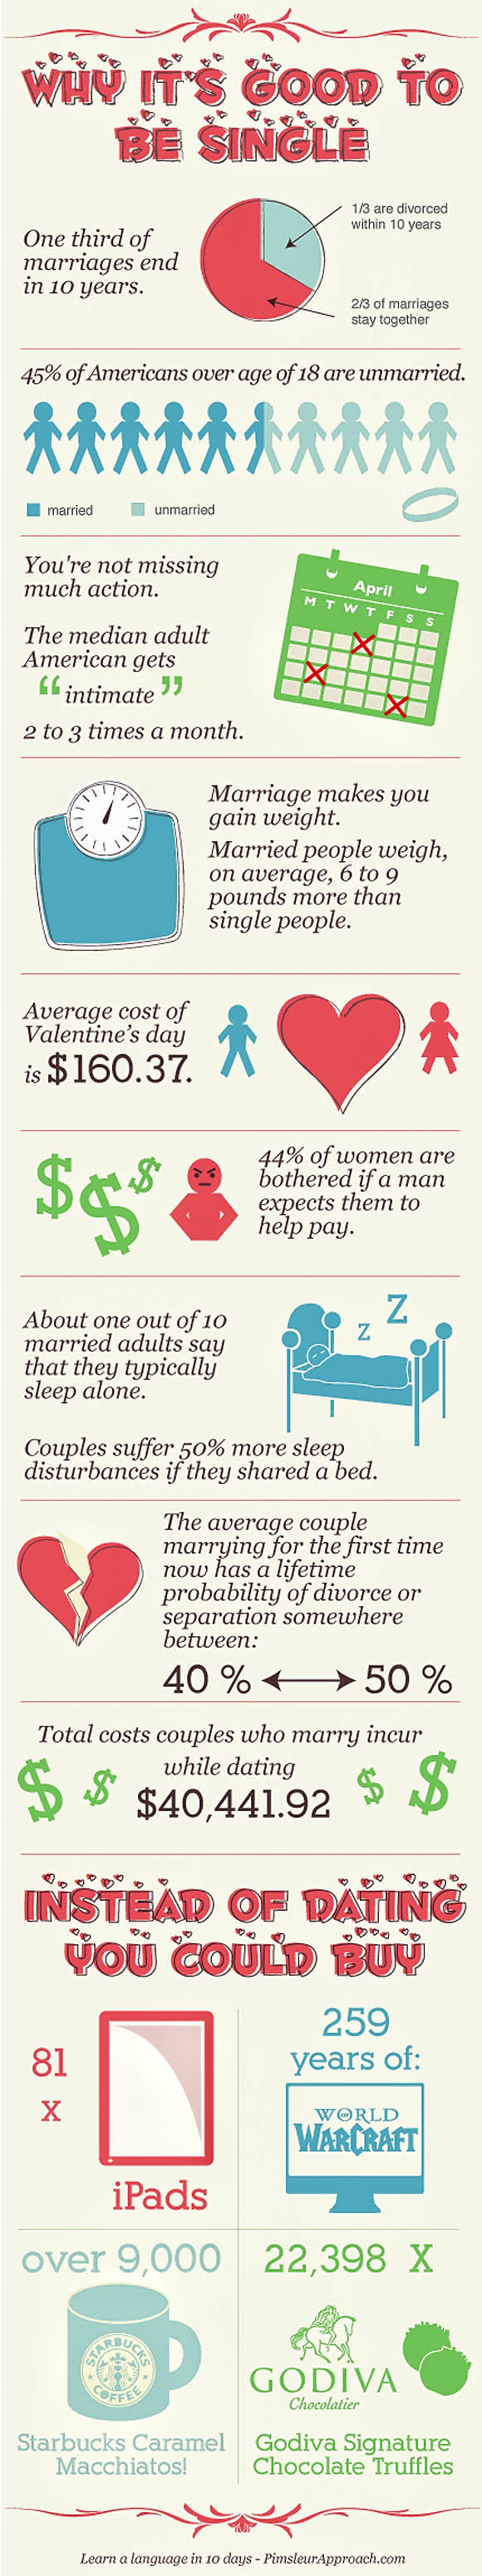 being single infographic